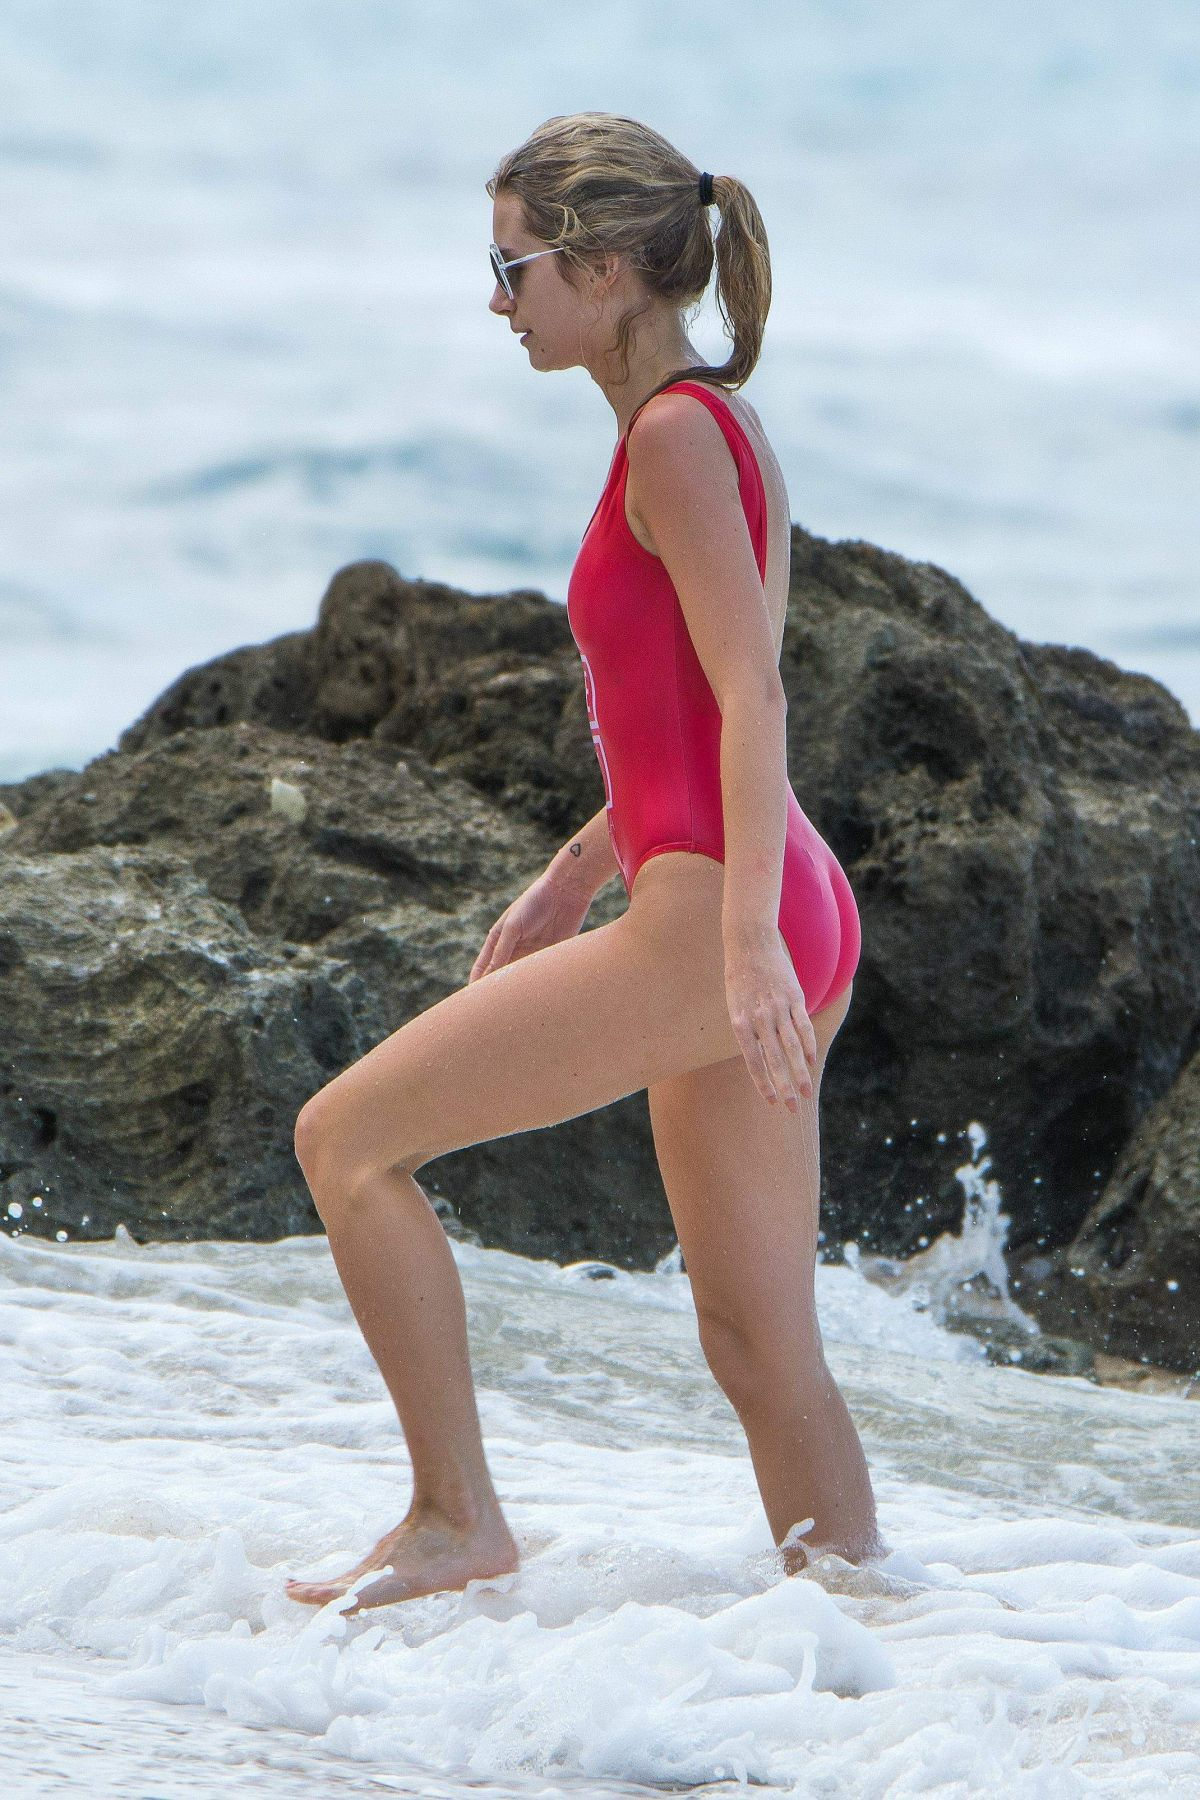 Lottie Moss In A one piece In Bridgetown, Barbados   lottie-moss-in-a-one-piece-in-bridgetown-barbados_11